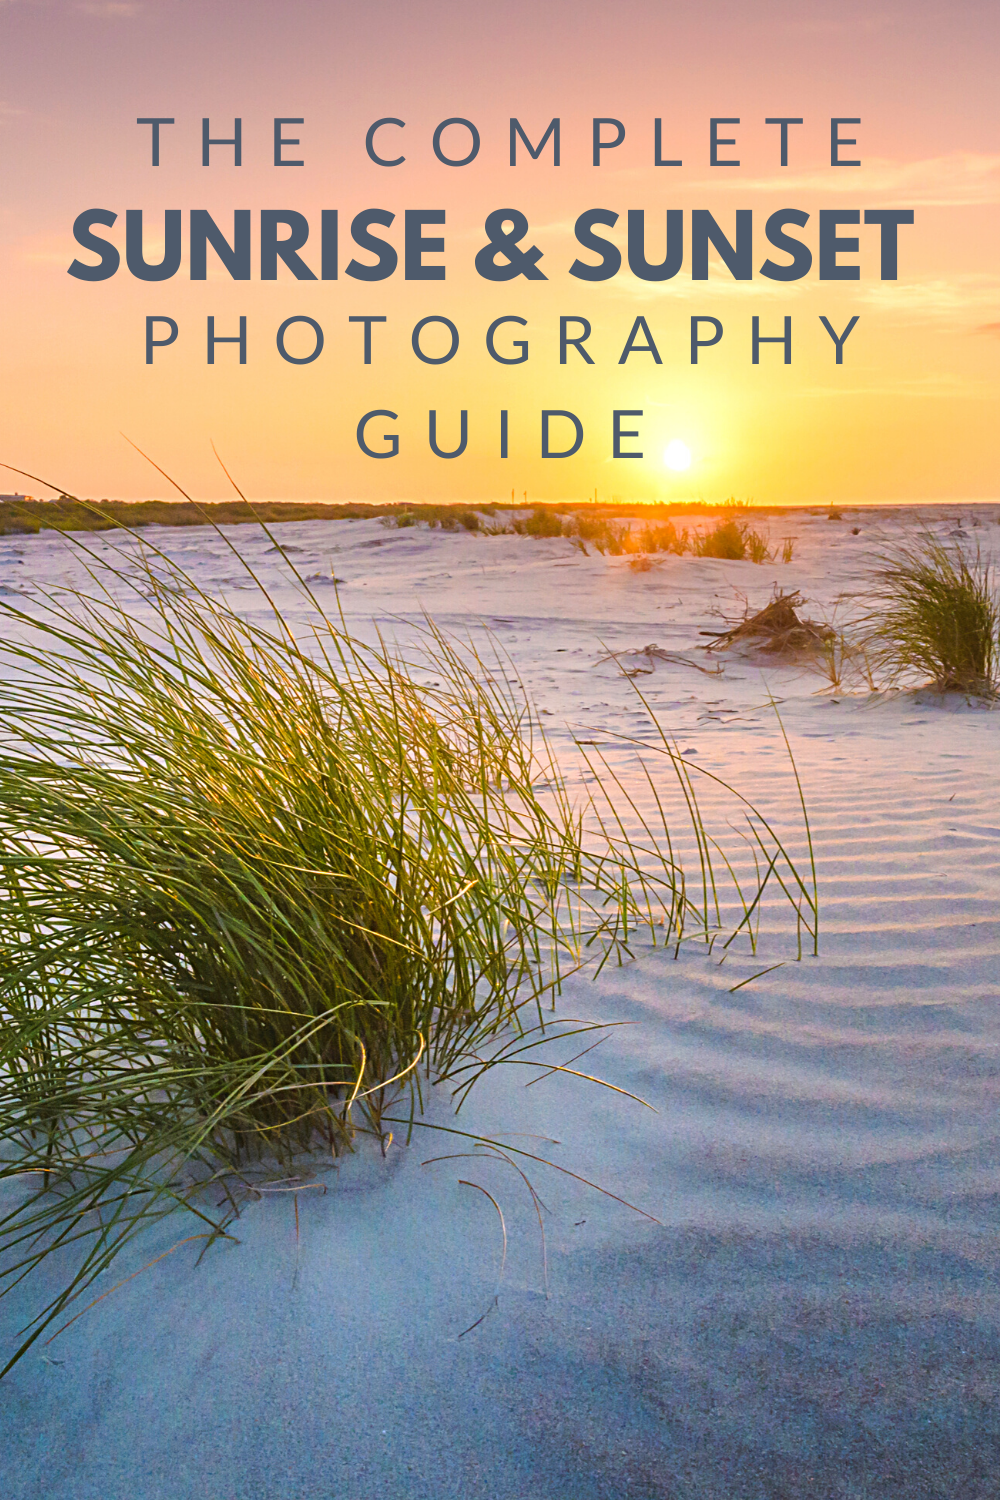 The Complete Guide To Sunrise & Sunset Photography In 2020